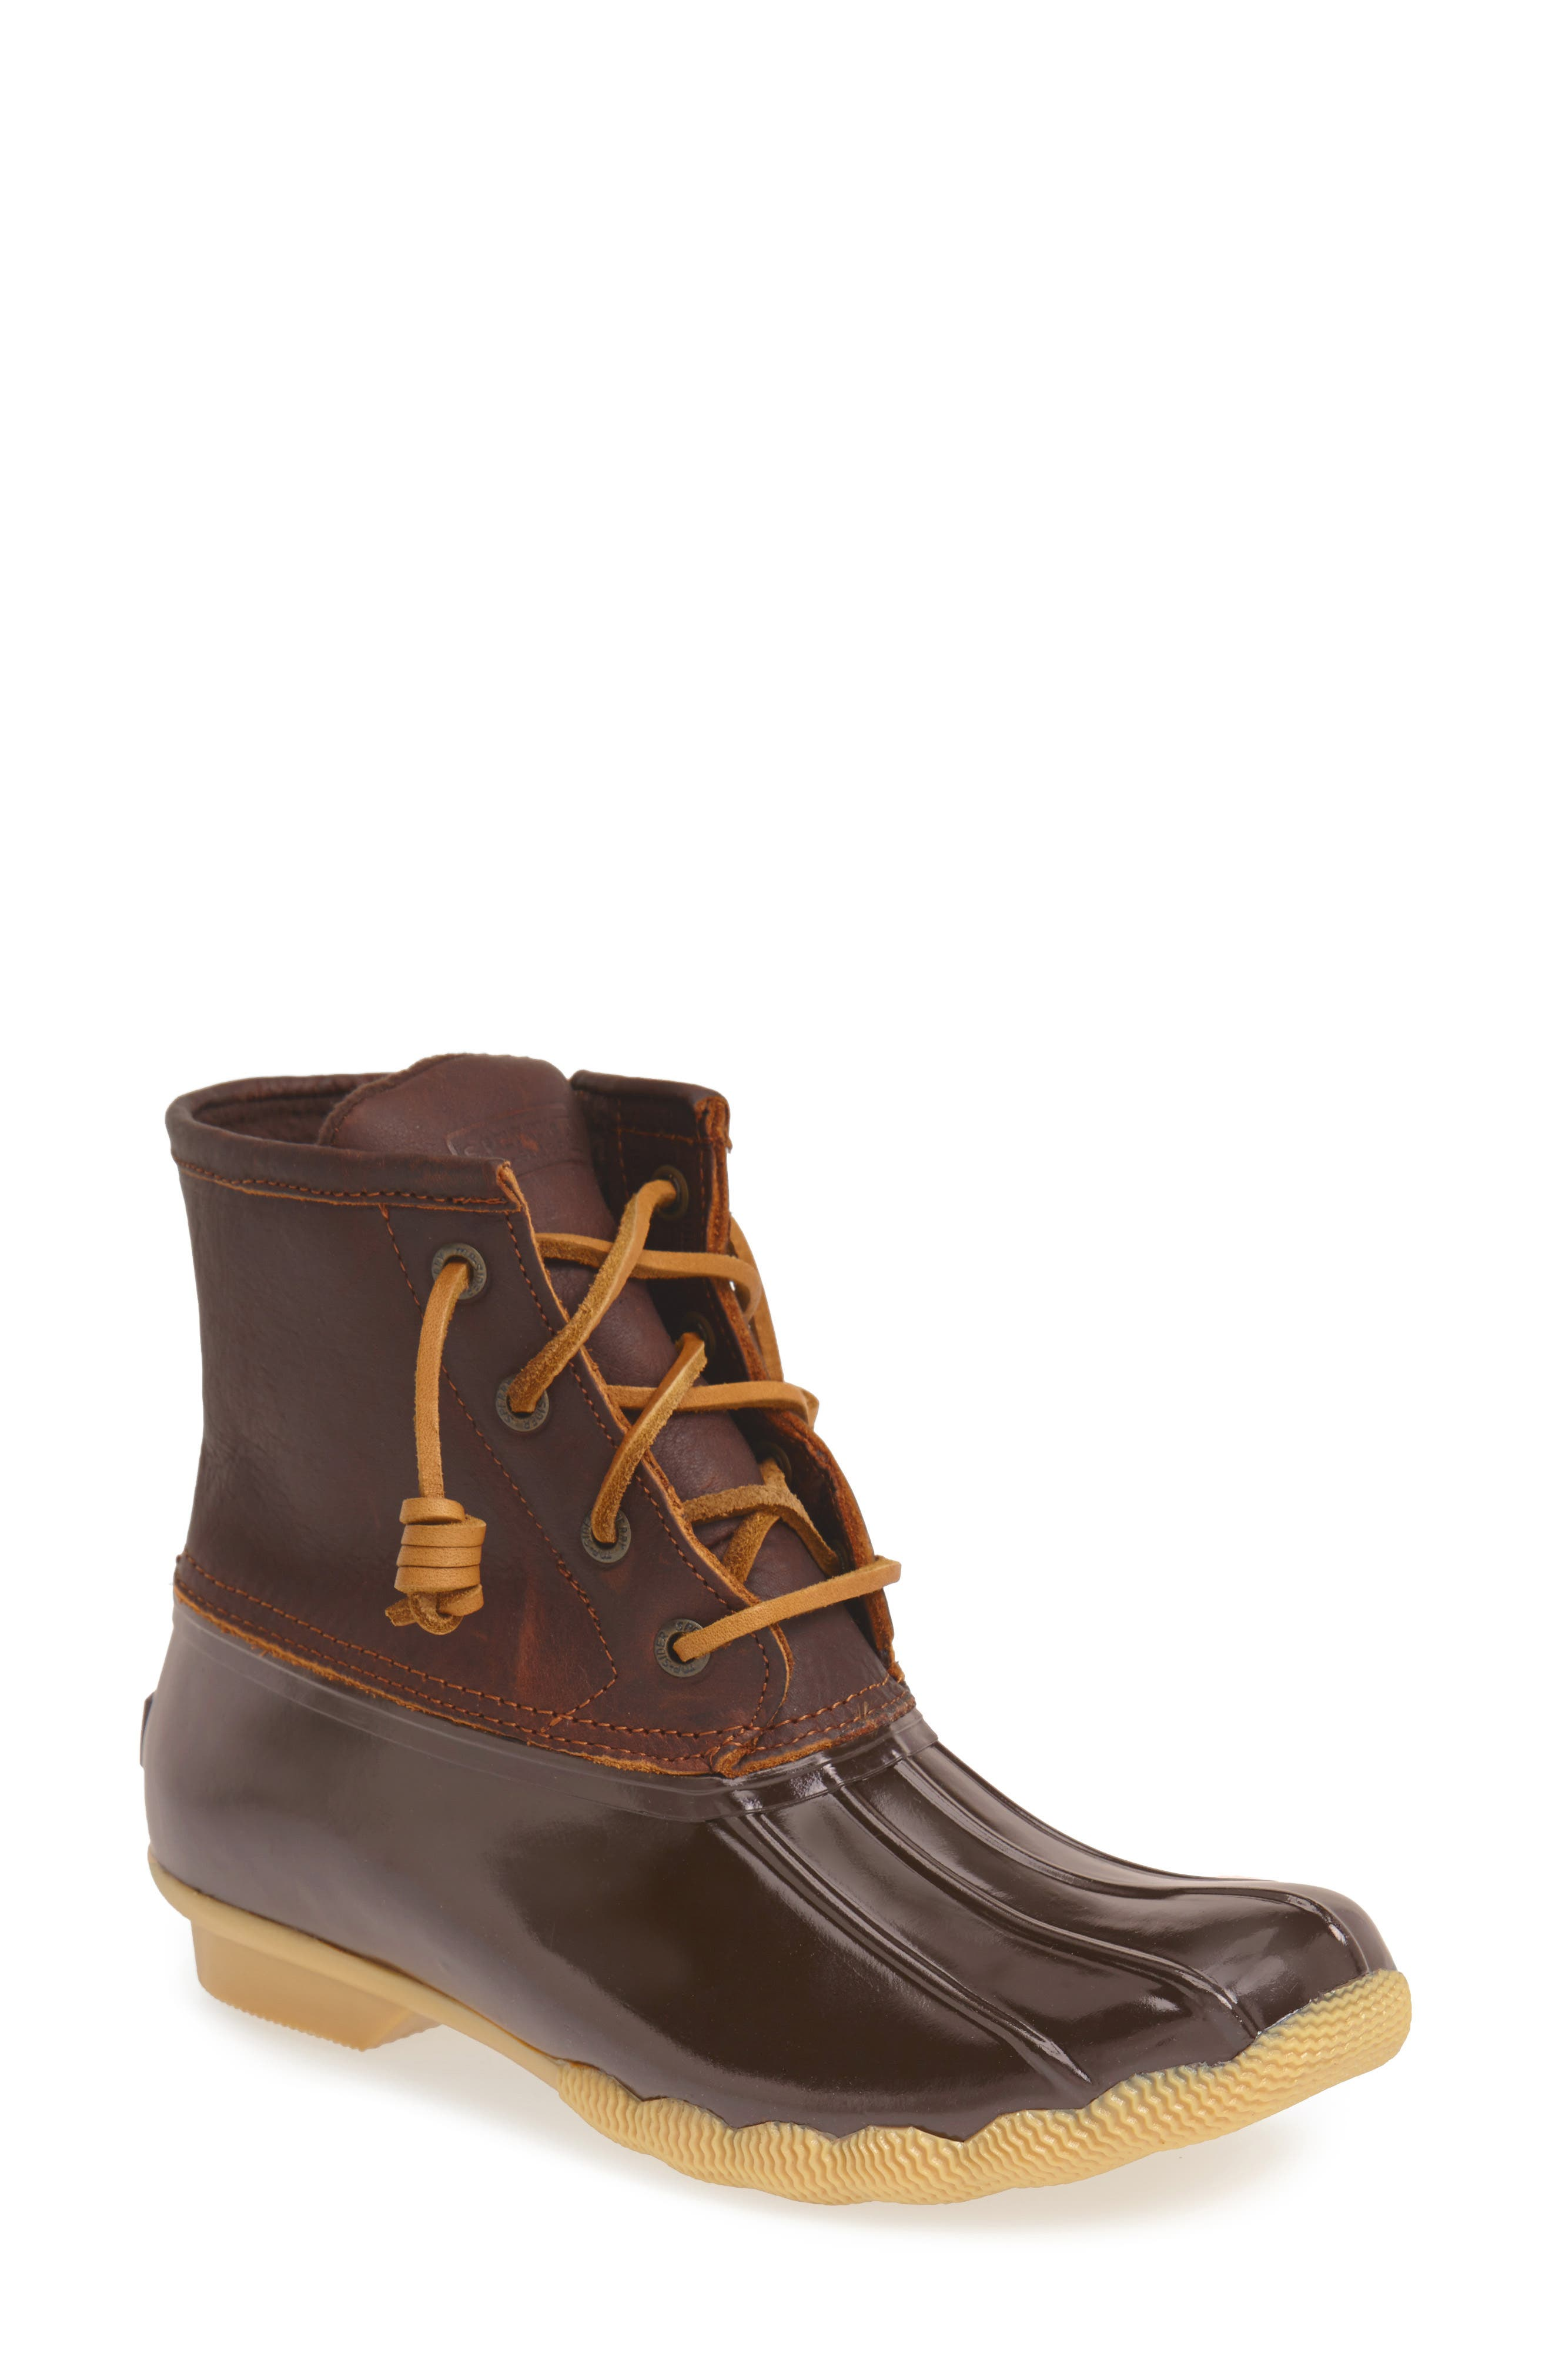 Saltwater Rain Boot,                         Main,                         color, Tan/ Brown